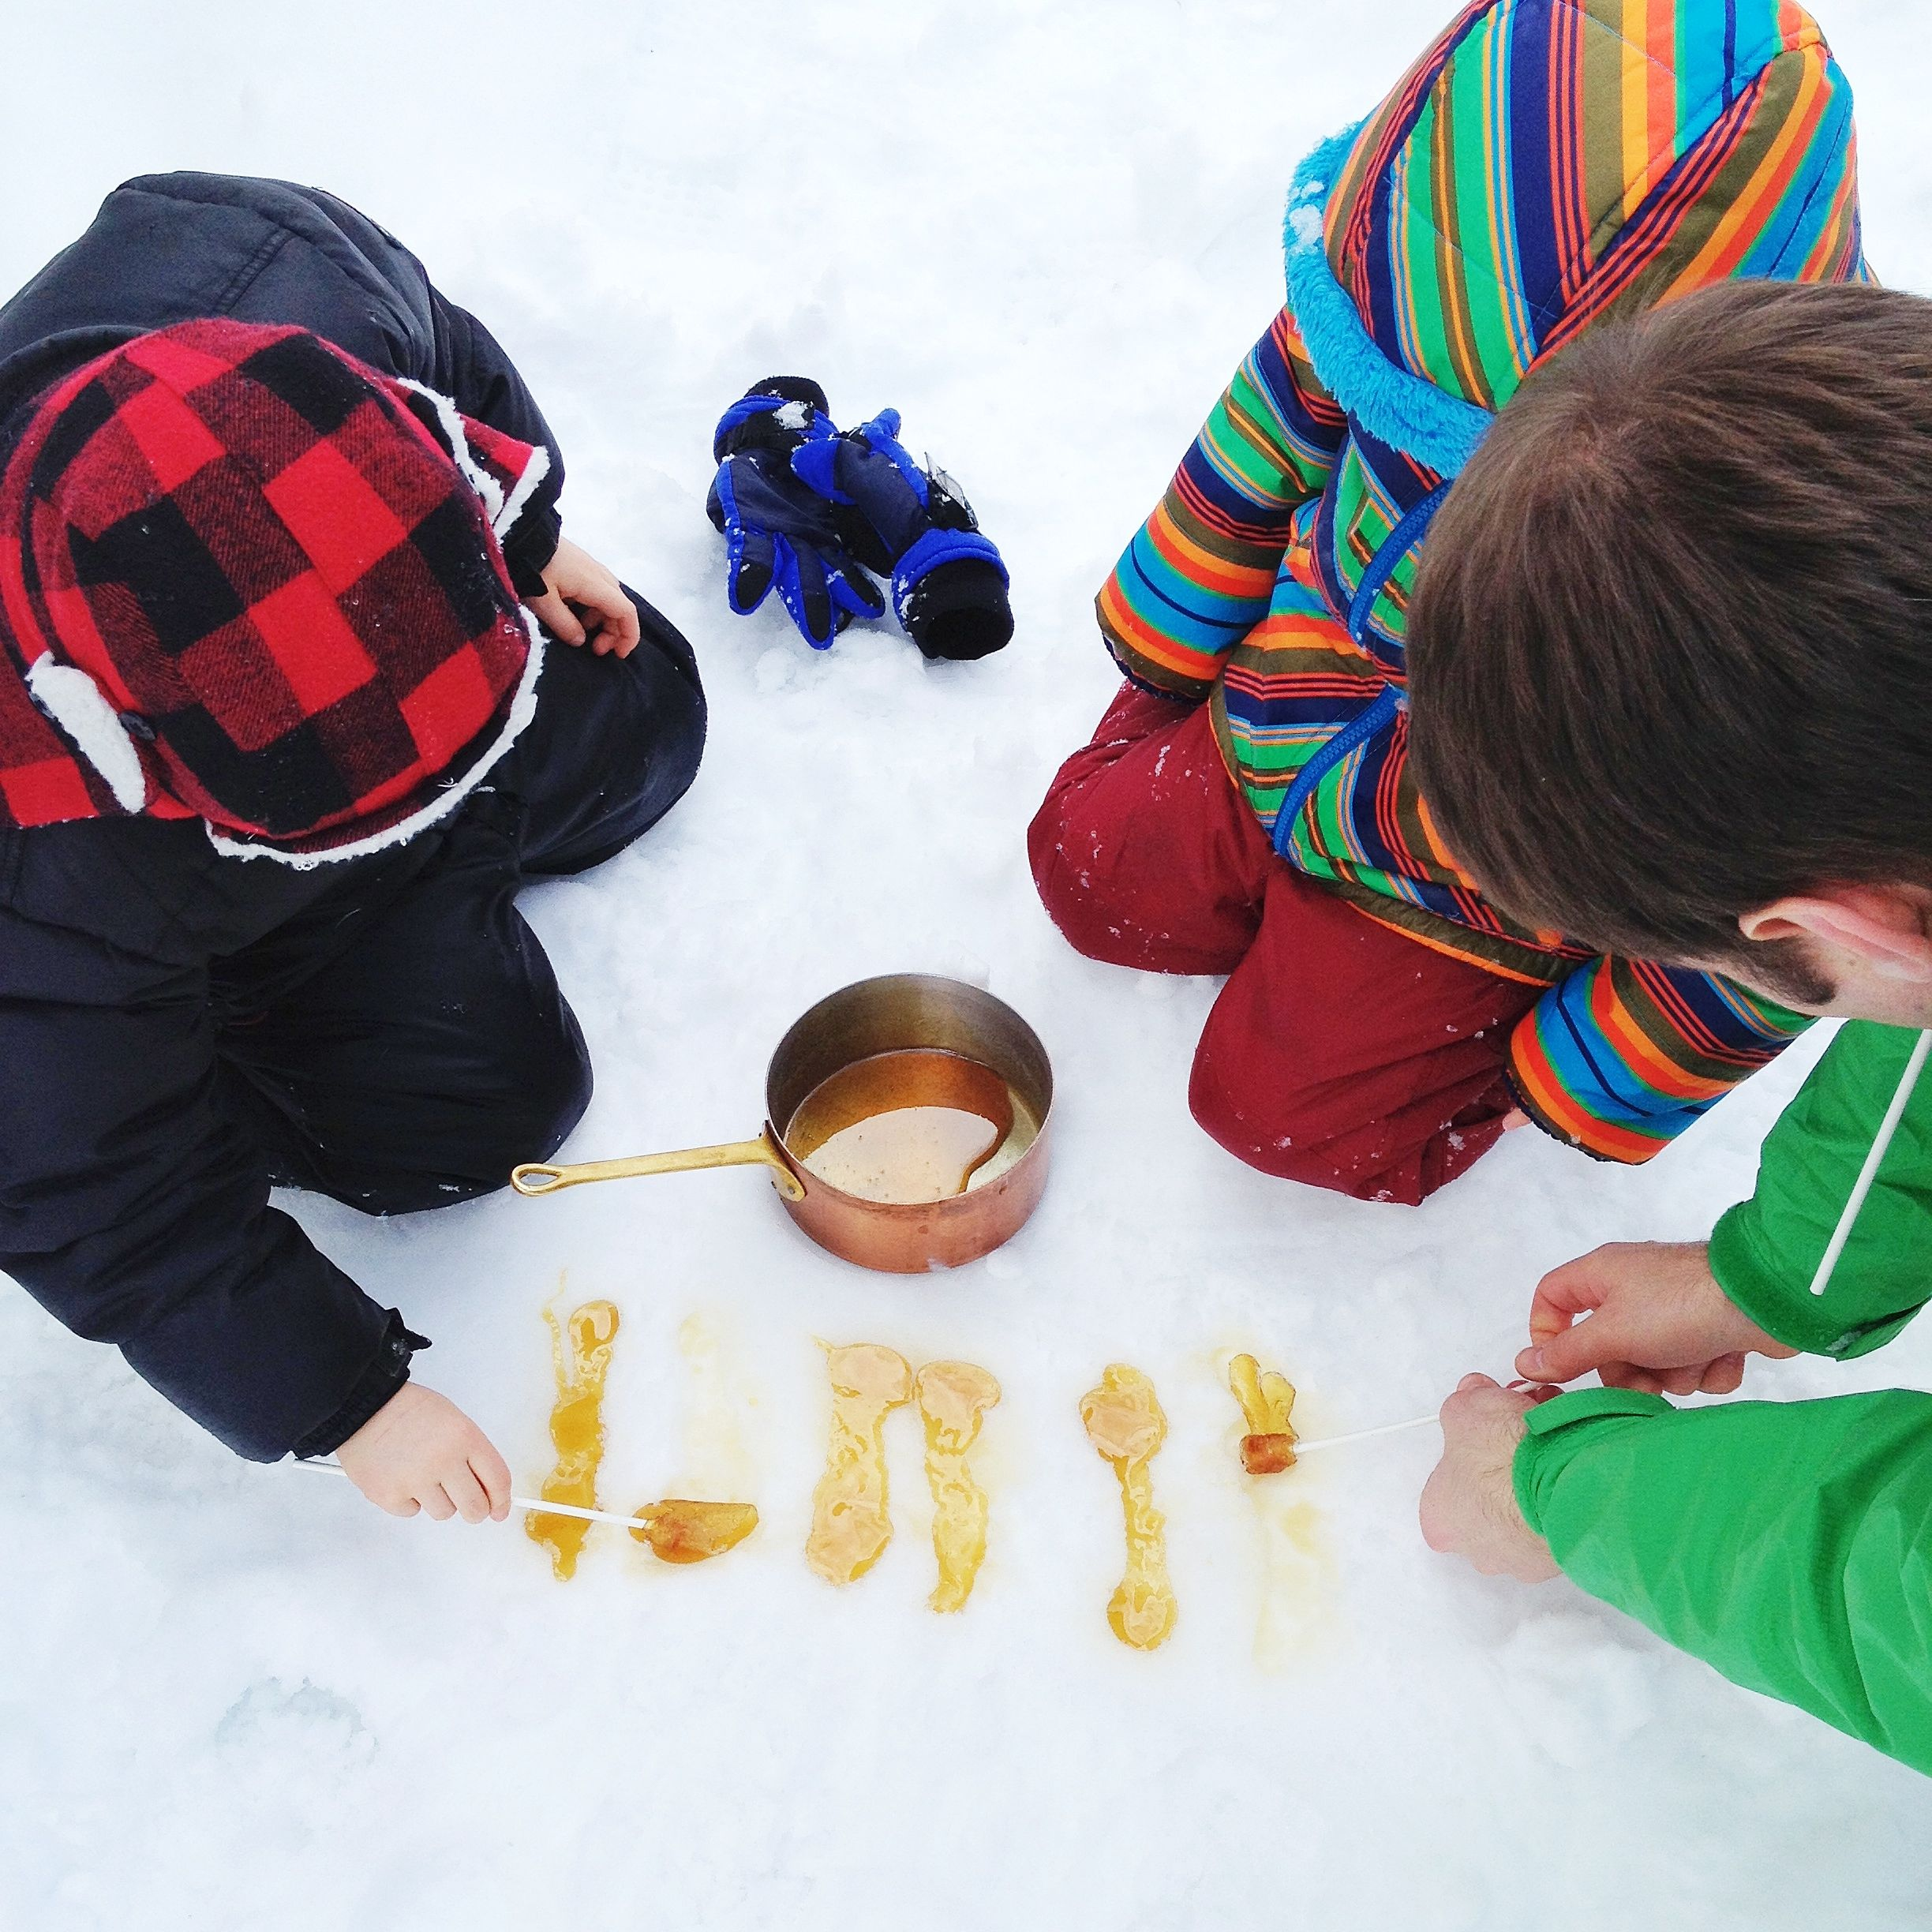 Spring harvest: what we're making with our maple syrup